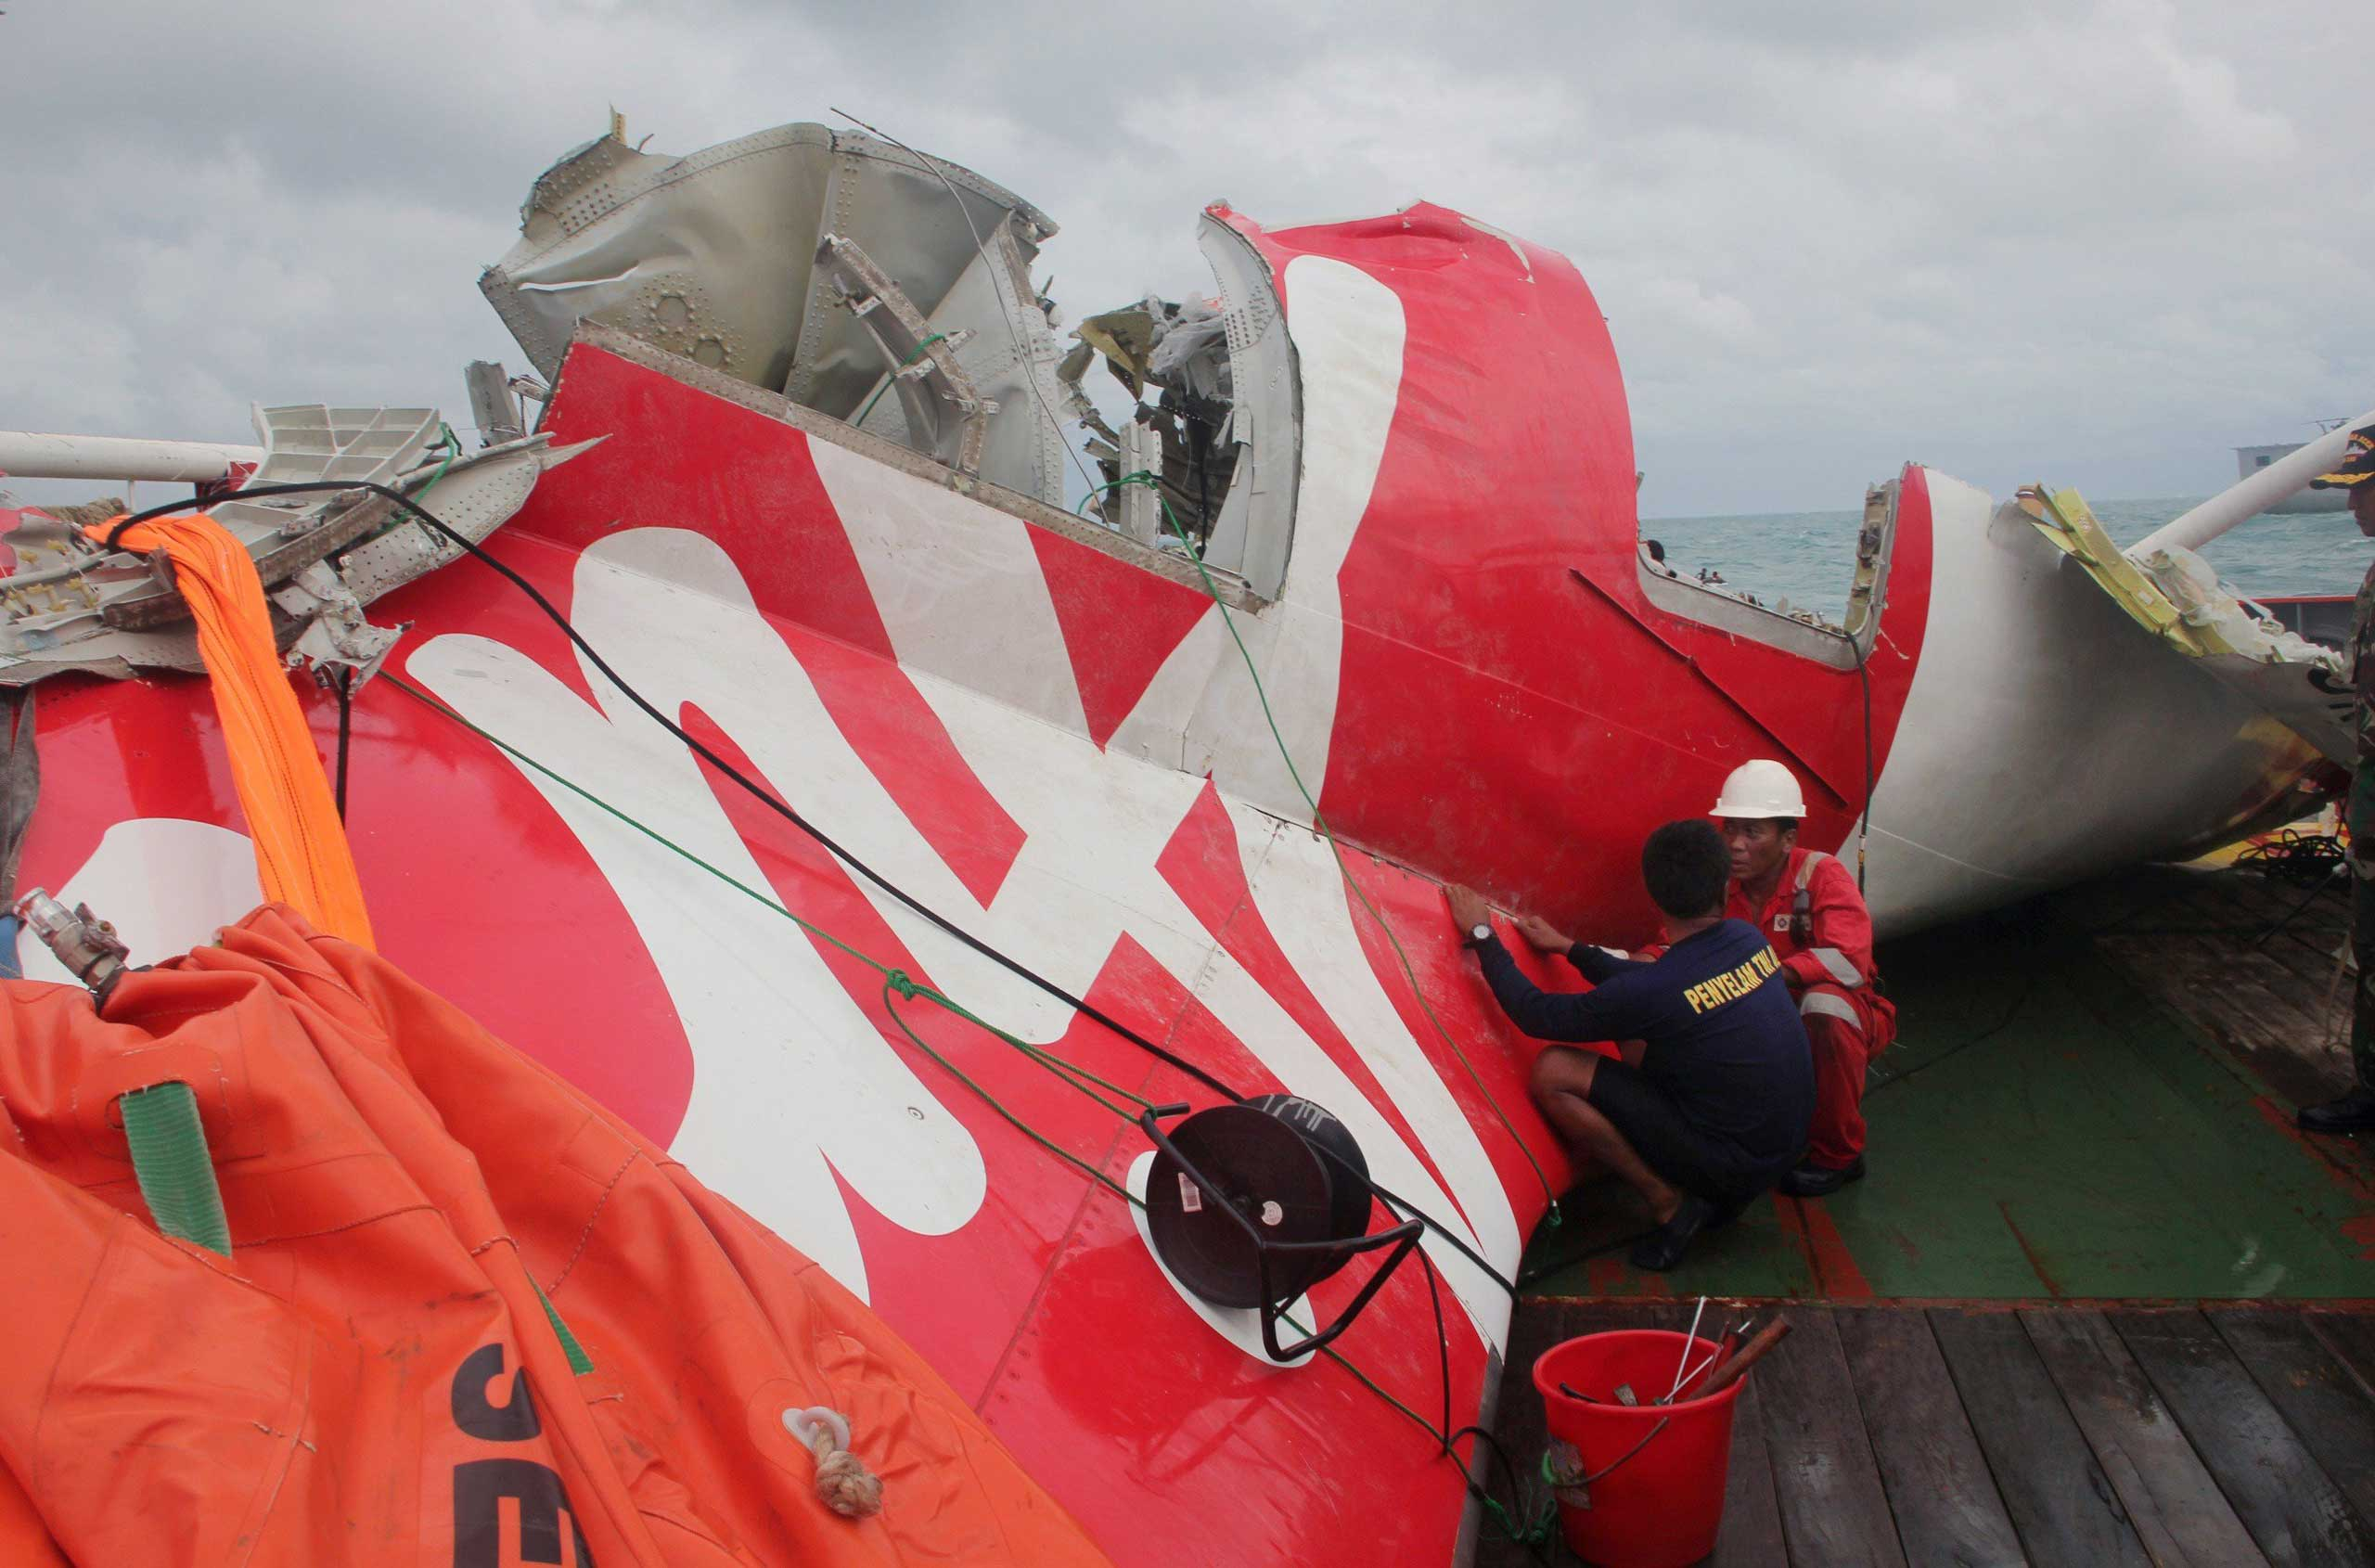 An Indonesian diver and an official examine the wreckage from AirAsia flight QZ8501 after it was lifted into the Crest Onyx ship at sea, near Indonesia on Jan. 10, 2015.